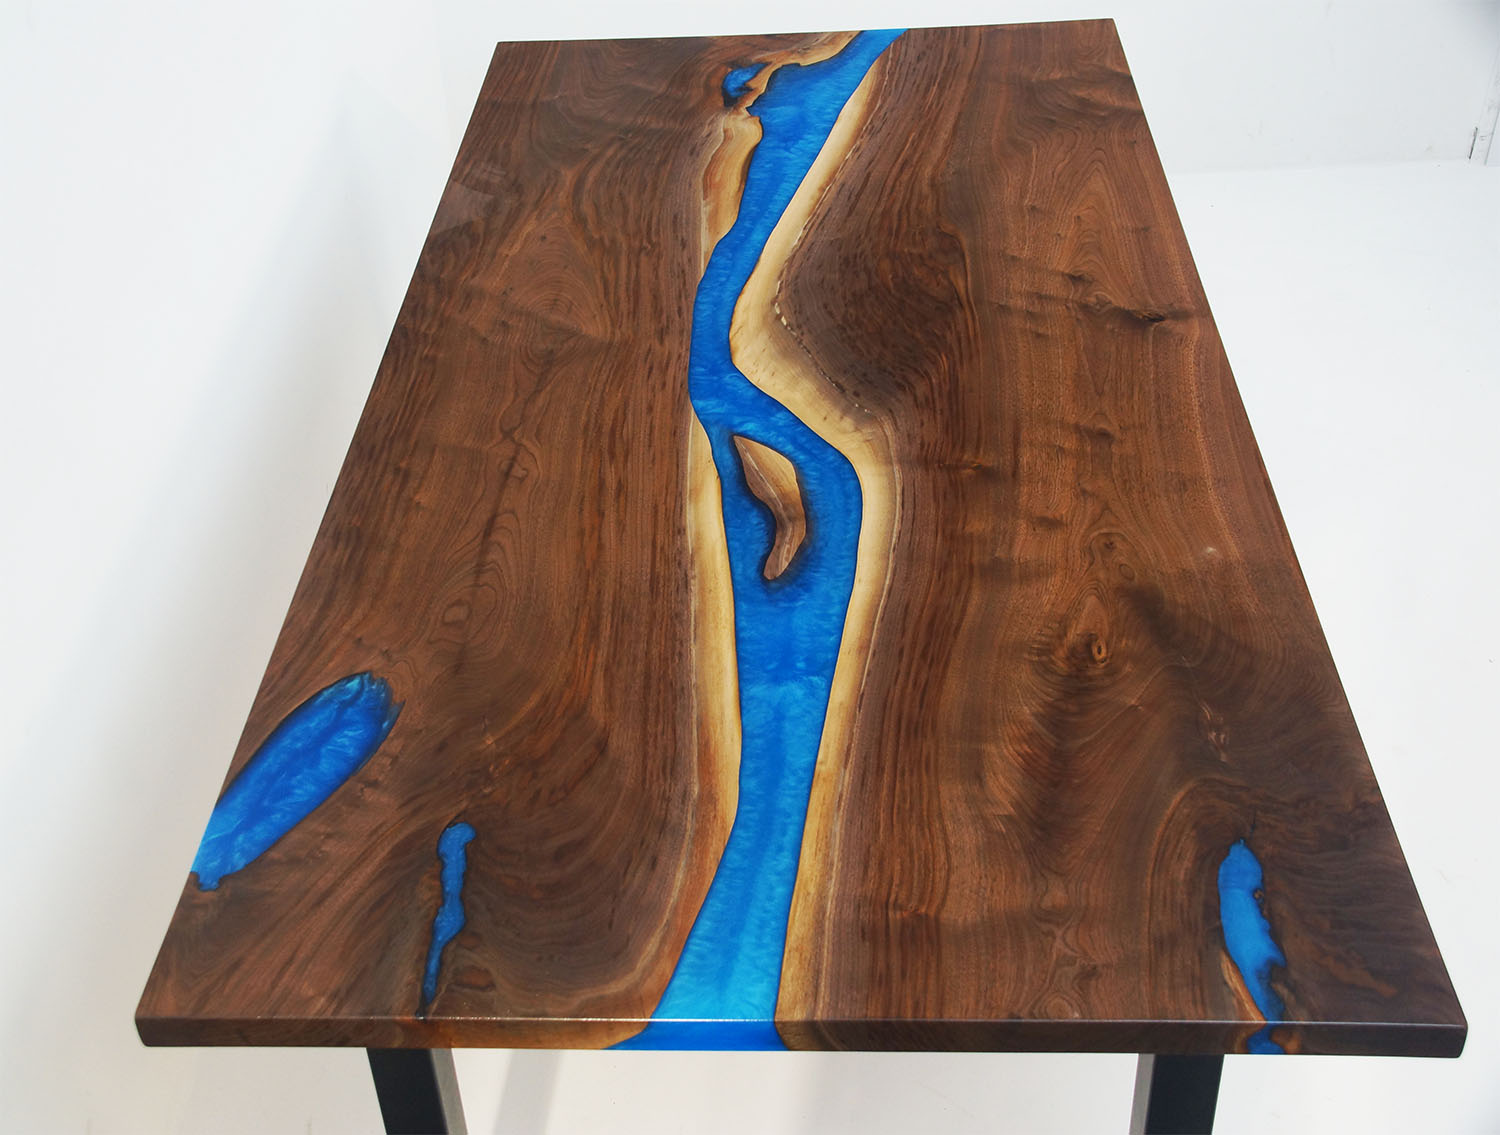 Dining Room Table In Walnut With Blue Resin River